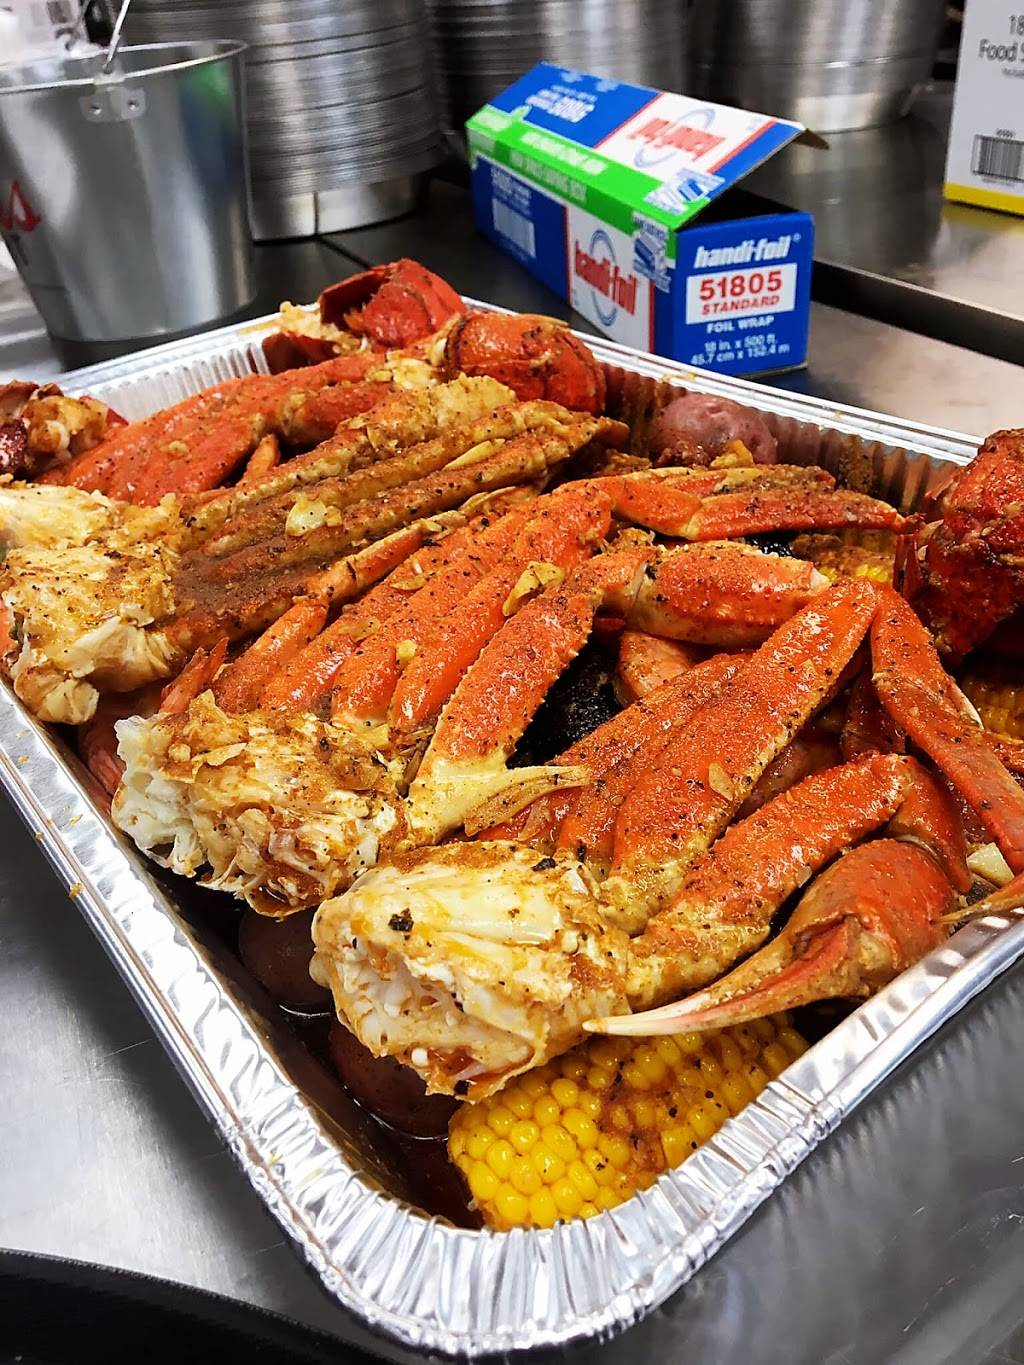 King Crab | restaurant | 7401 E Independence Blvd, Charlotte, NC 28227, USA | 9802990029 OR +1 980-299-0029